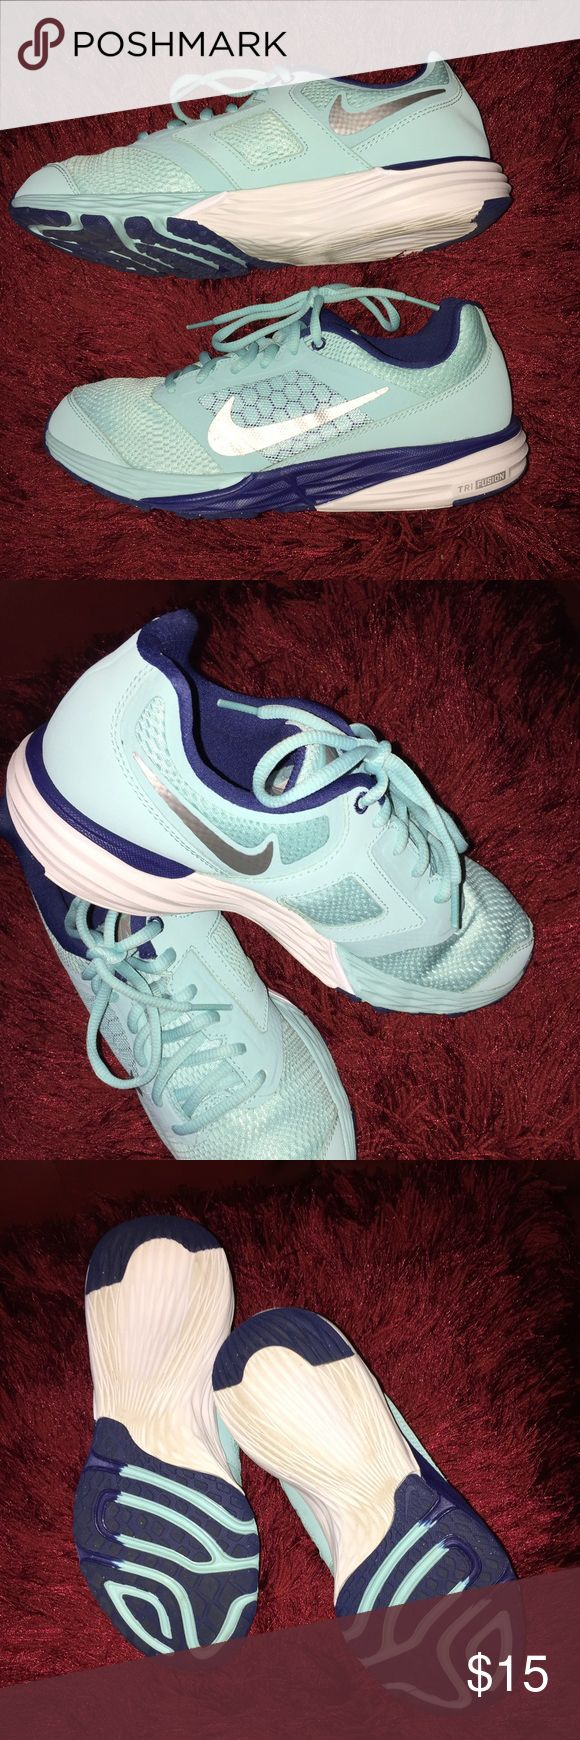 New Nike tri fusion sneakers size 6.5 women's New size 6.5 running sneakers women's NIKE TRI FUSION. nike Shoes Sneakers